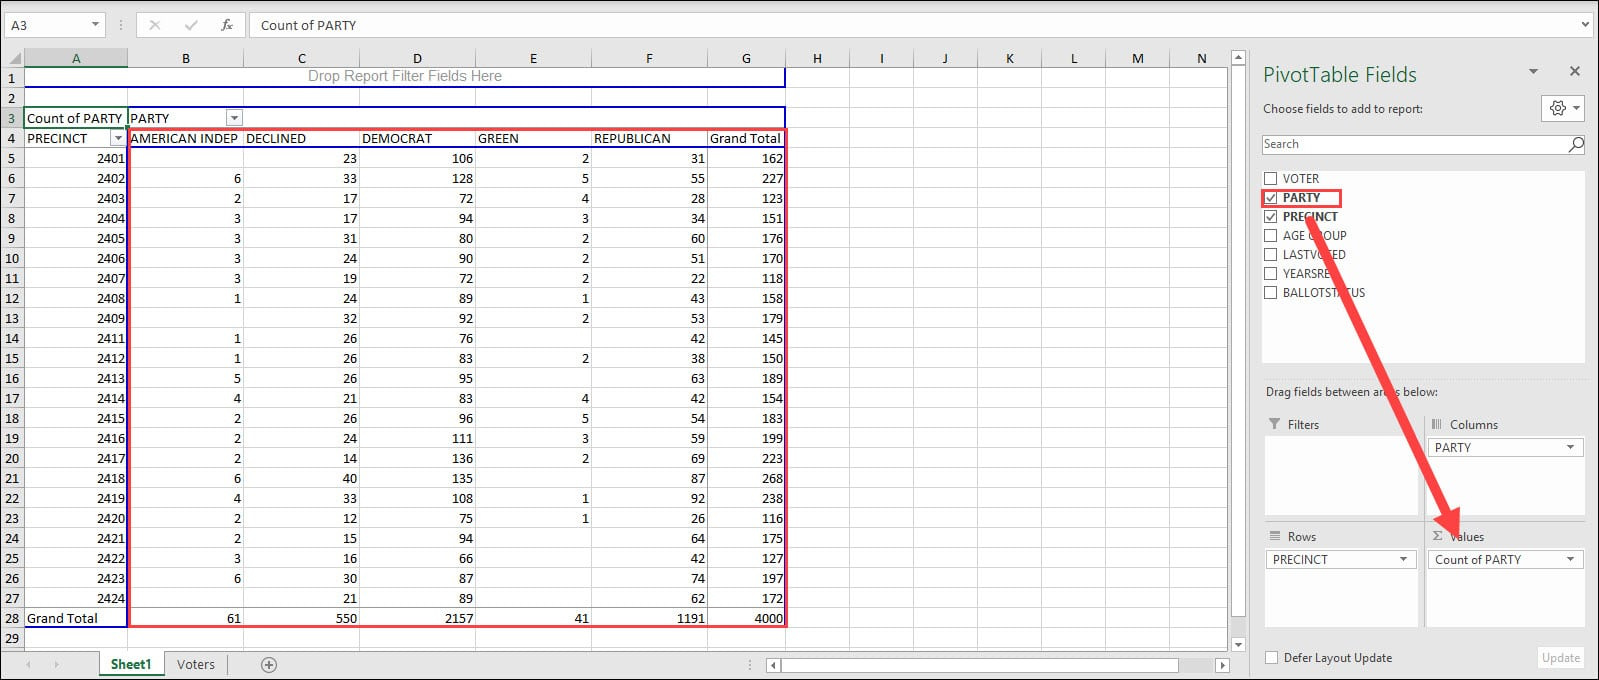 pivot table with precinct counts.